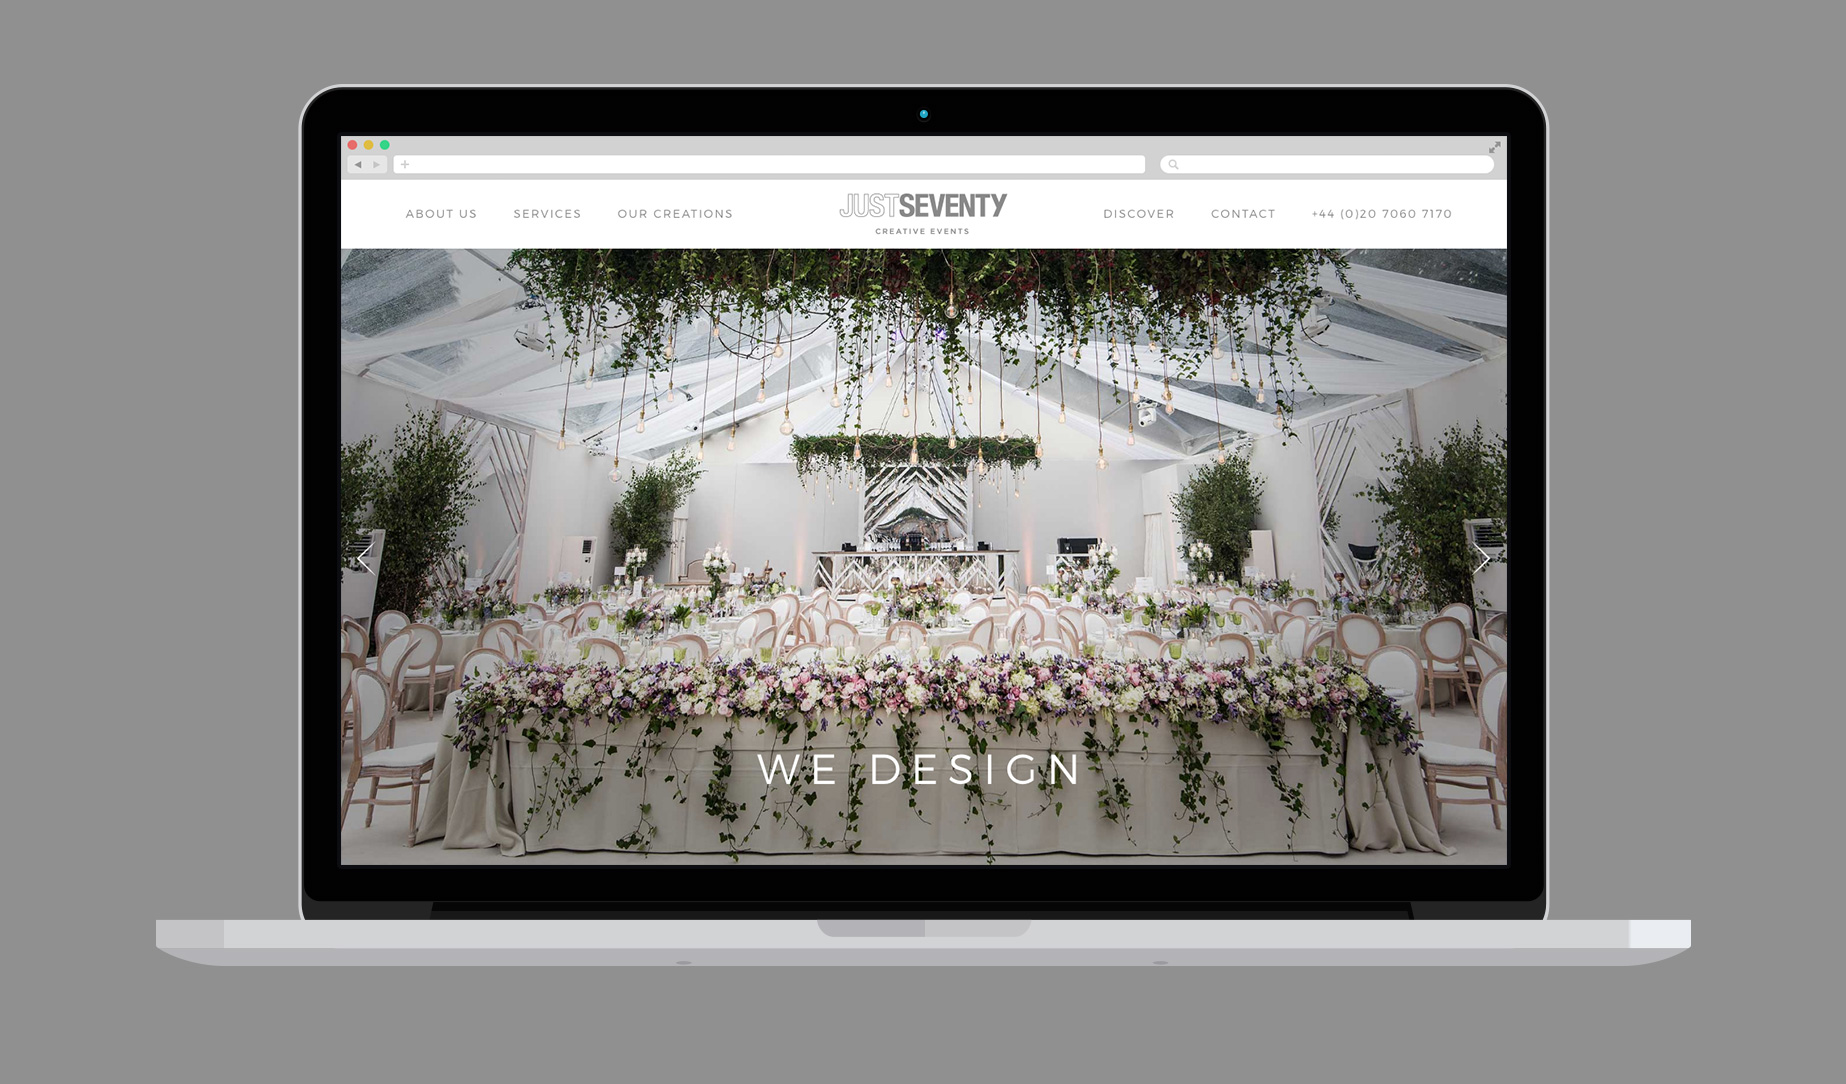 Website design and build for events business